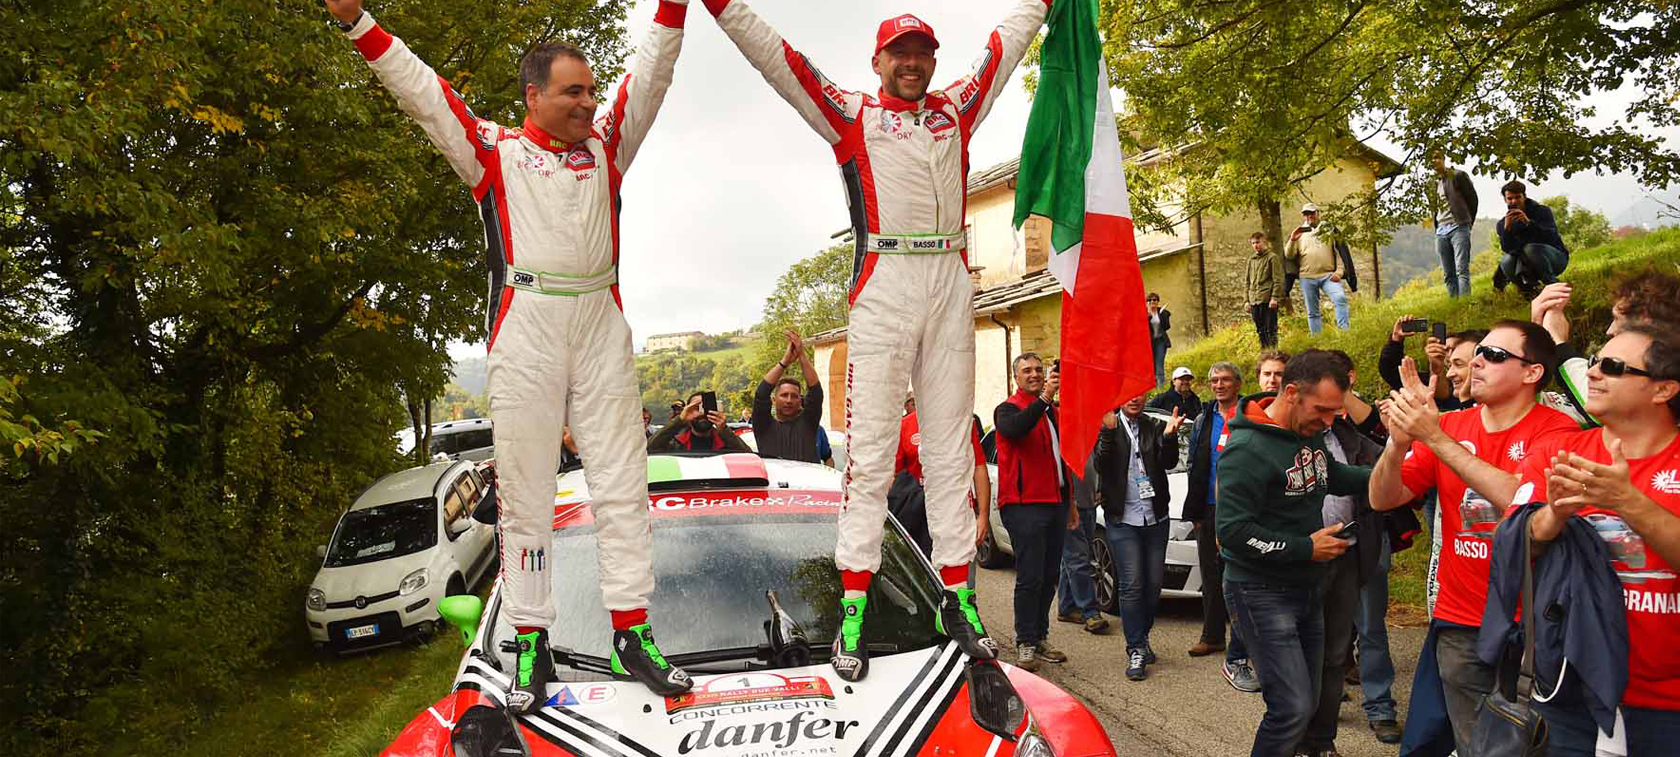 Rally Due Valli 2016 - Basso is champion!